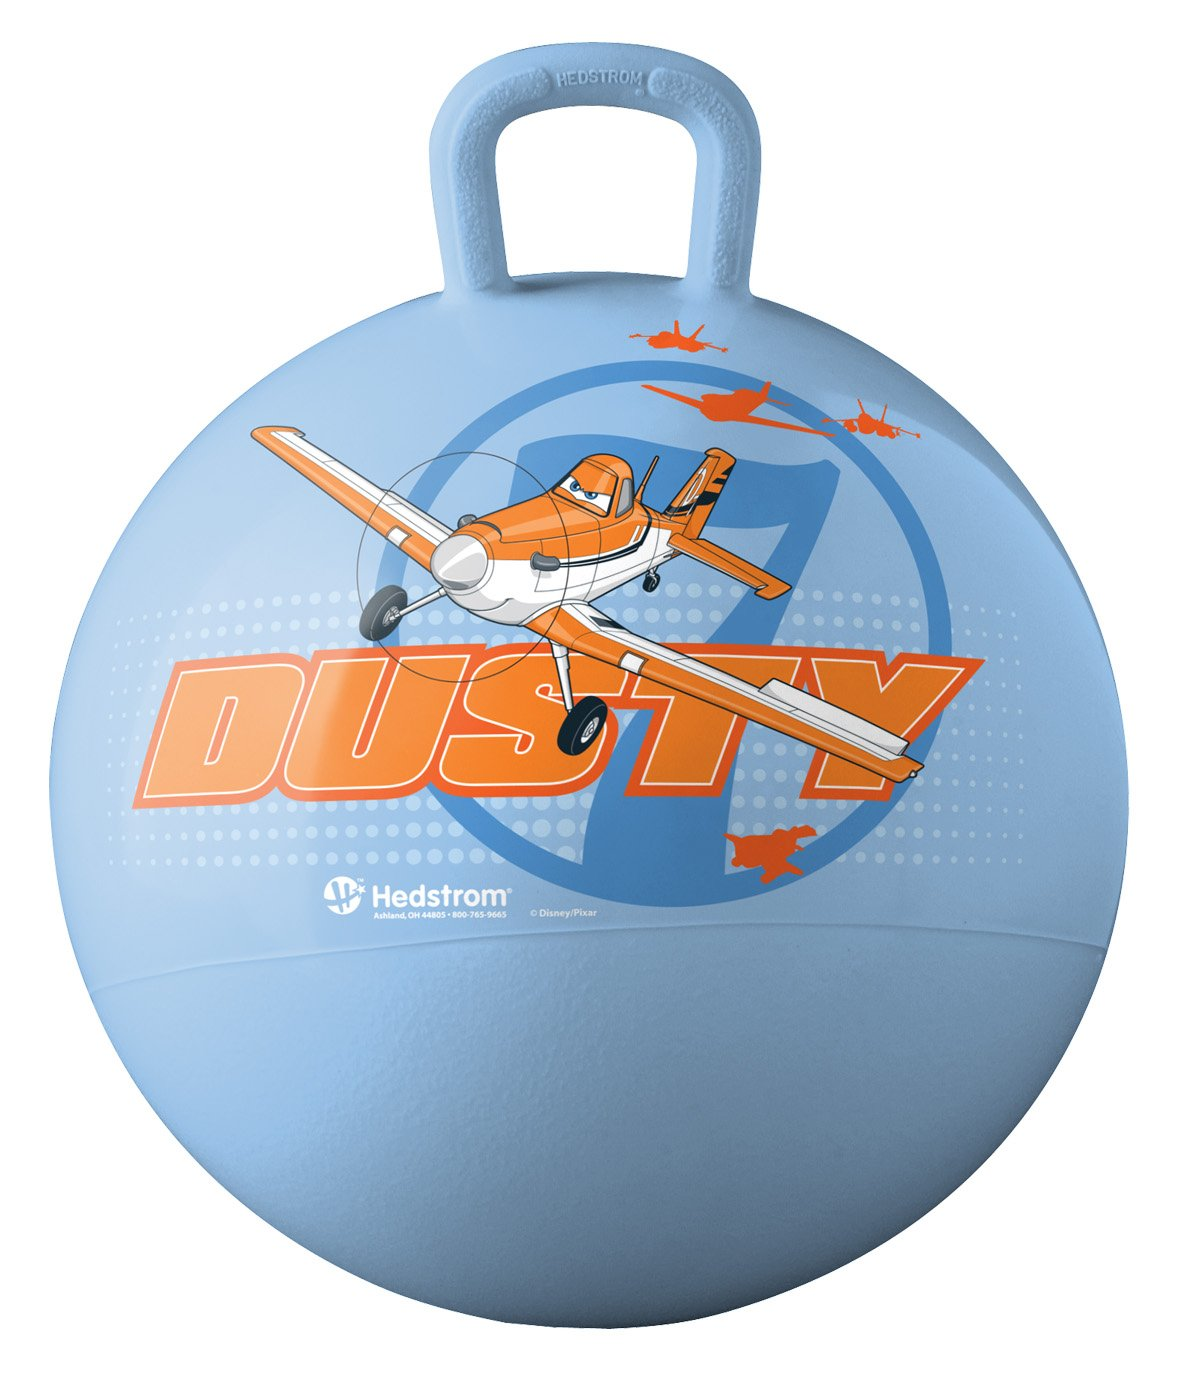 Ball Bounce and Sport Toys Disney Frozen Hopper (Styles and Colors May Vary) Hedstrom Toys 55-8580